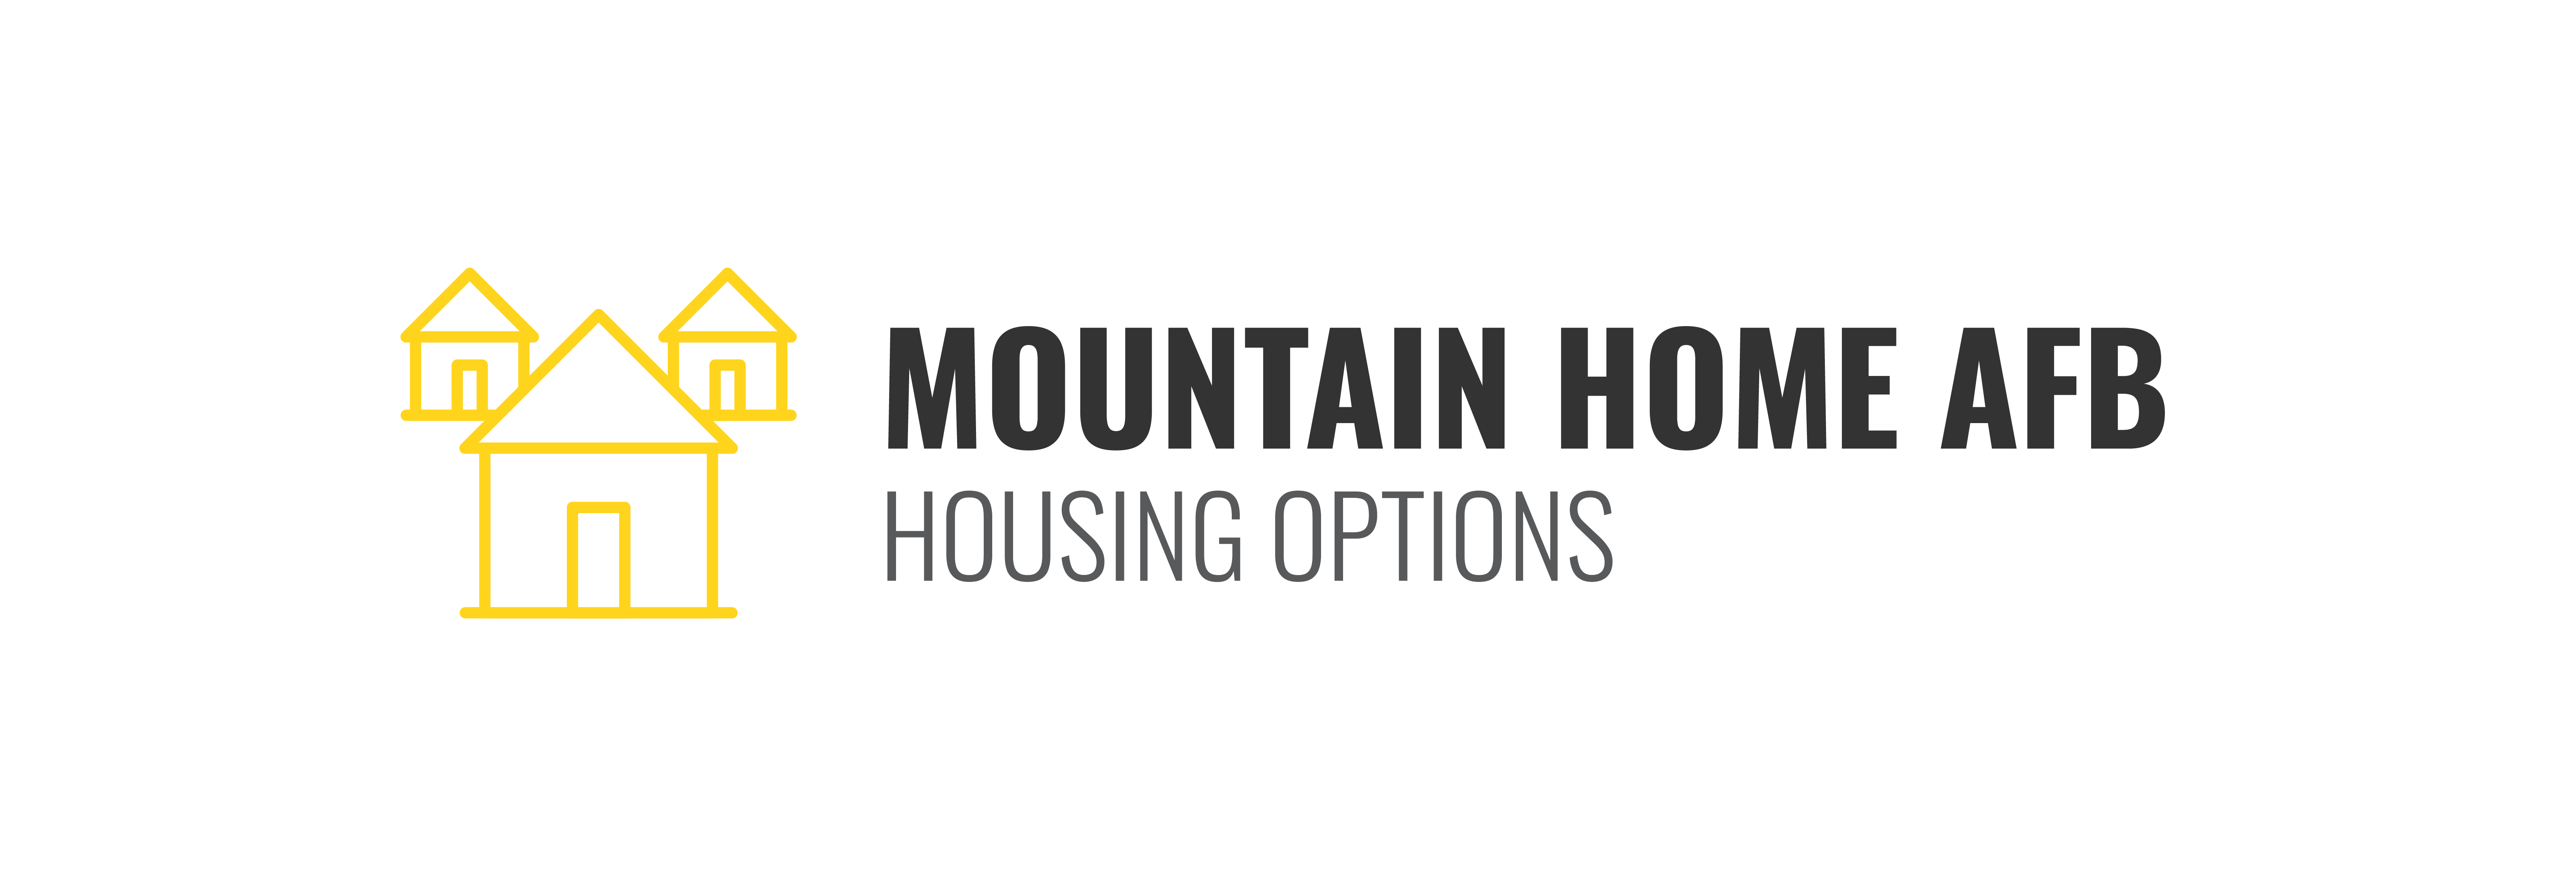 Mountain Home AFB Housing Options